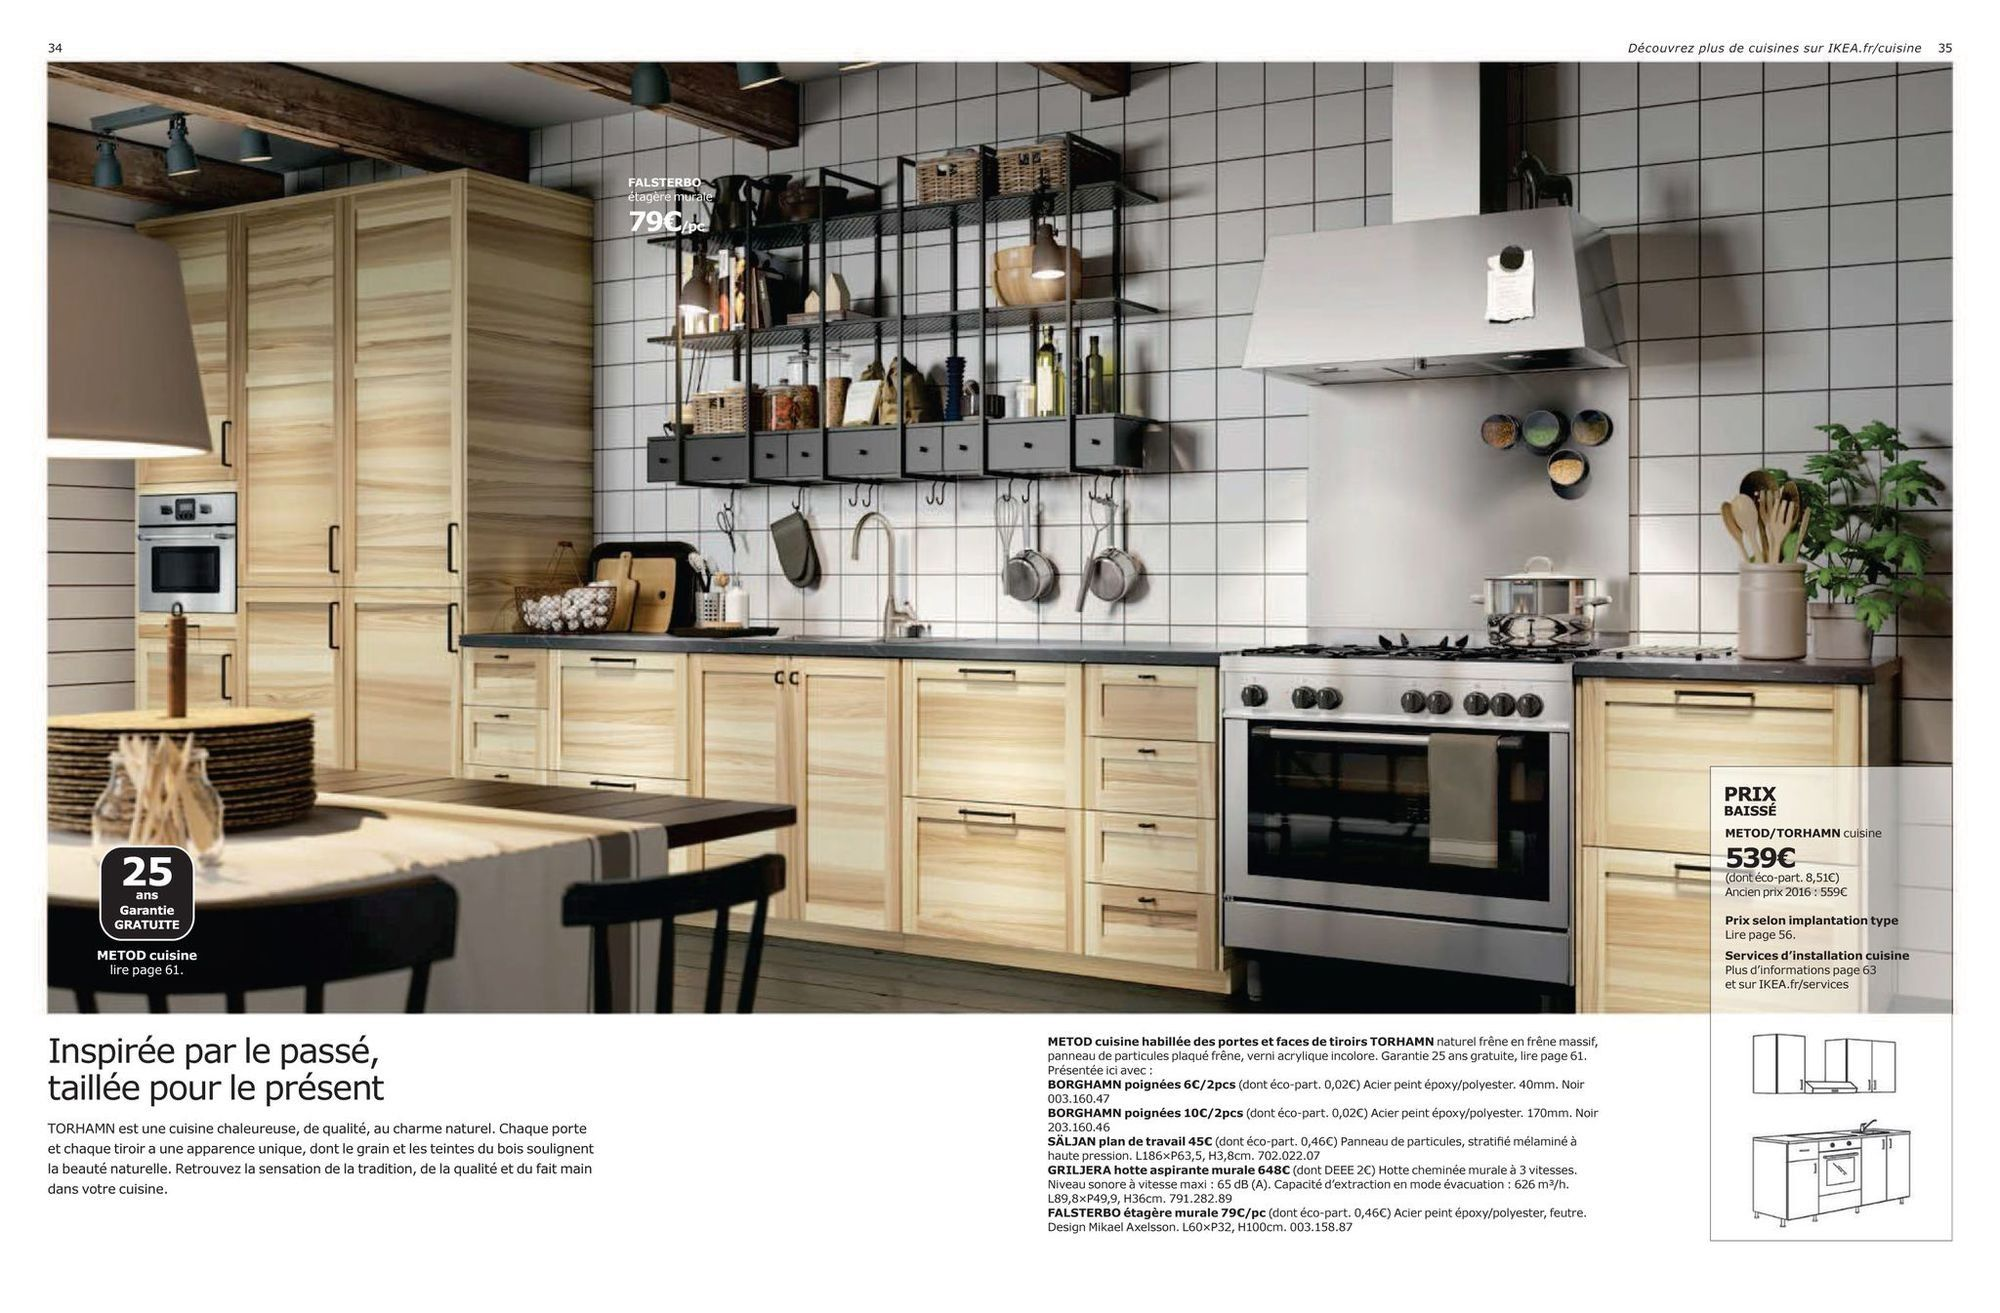 METOD kitchen dressed with doors and drawers TORHAMN natural ash